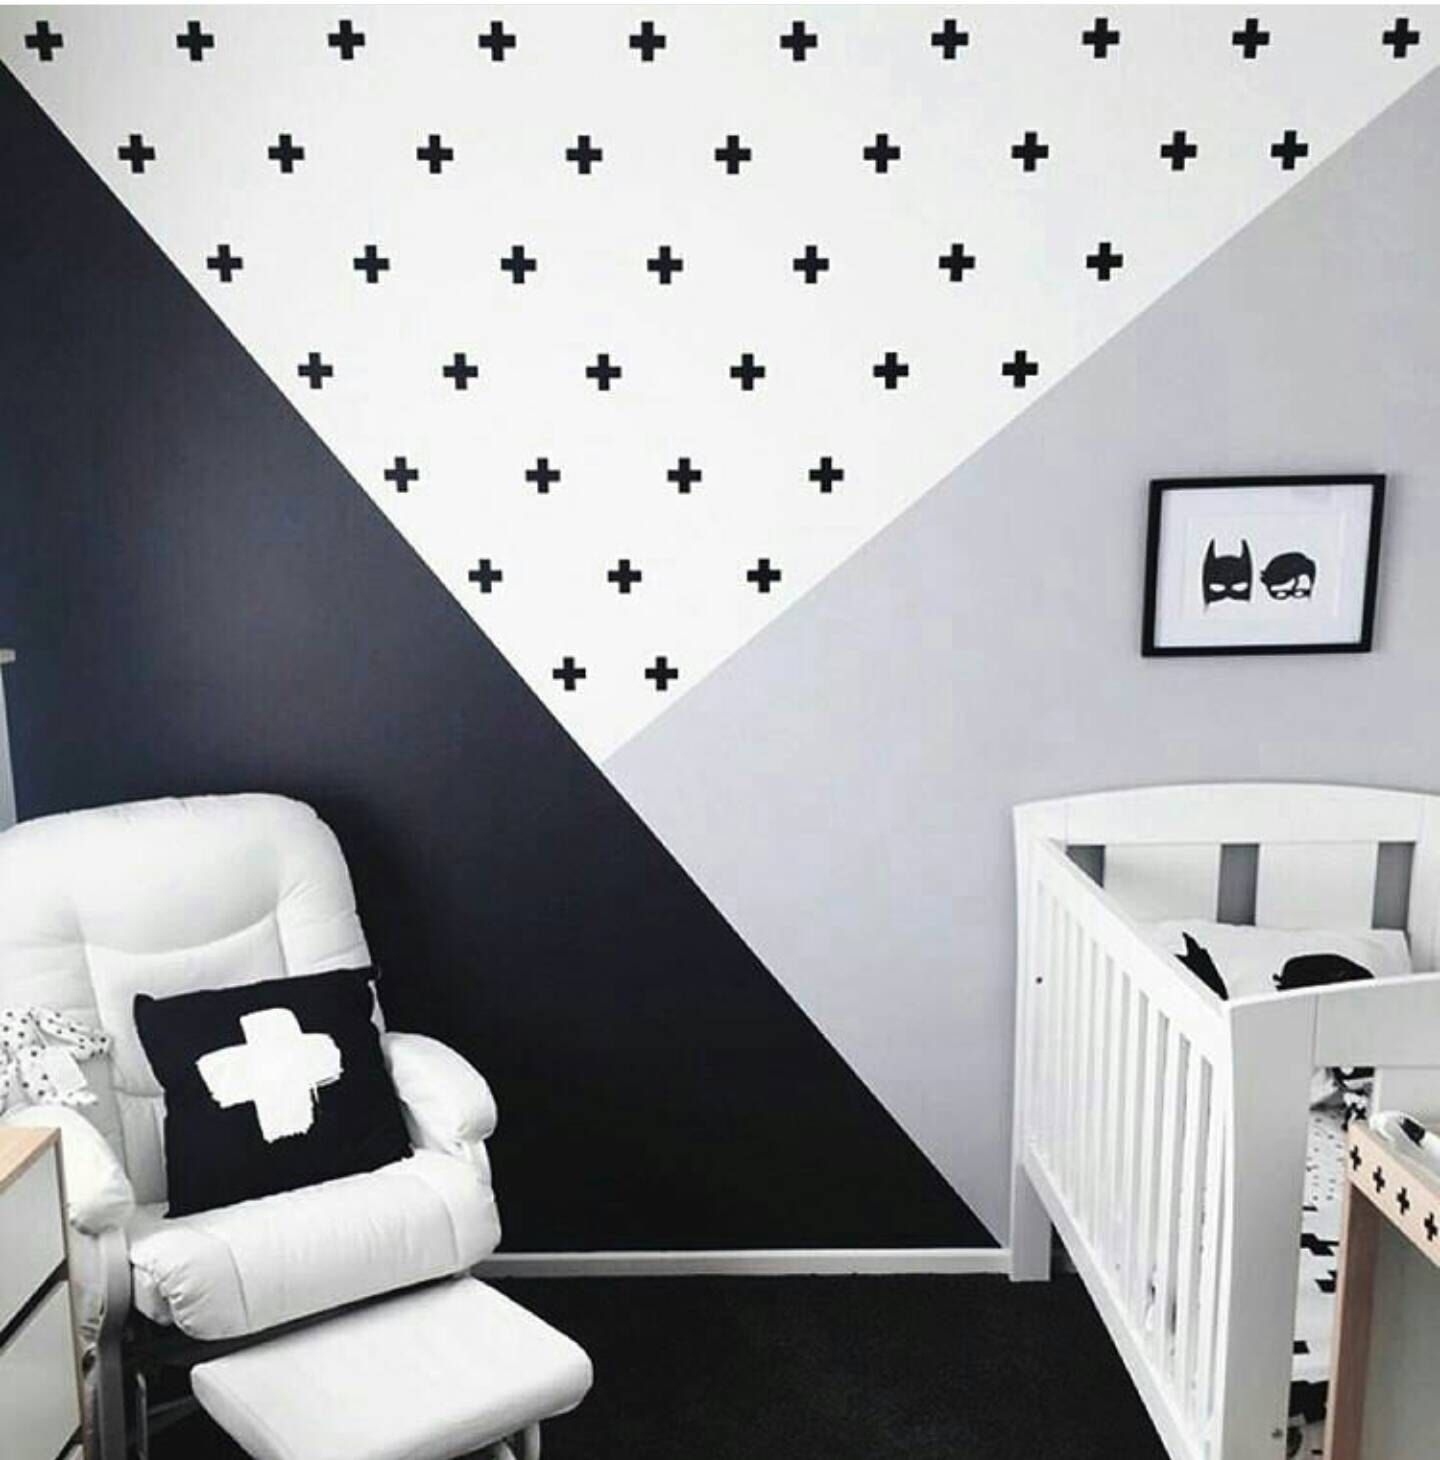 Swiss Cross Wall Decals, Plus Sign Wall Stickers, Geometric Accent With Regard To Newest Geometric Shapes Wall Accents (View 14 of 15)